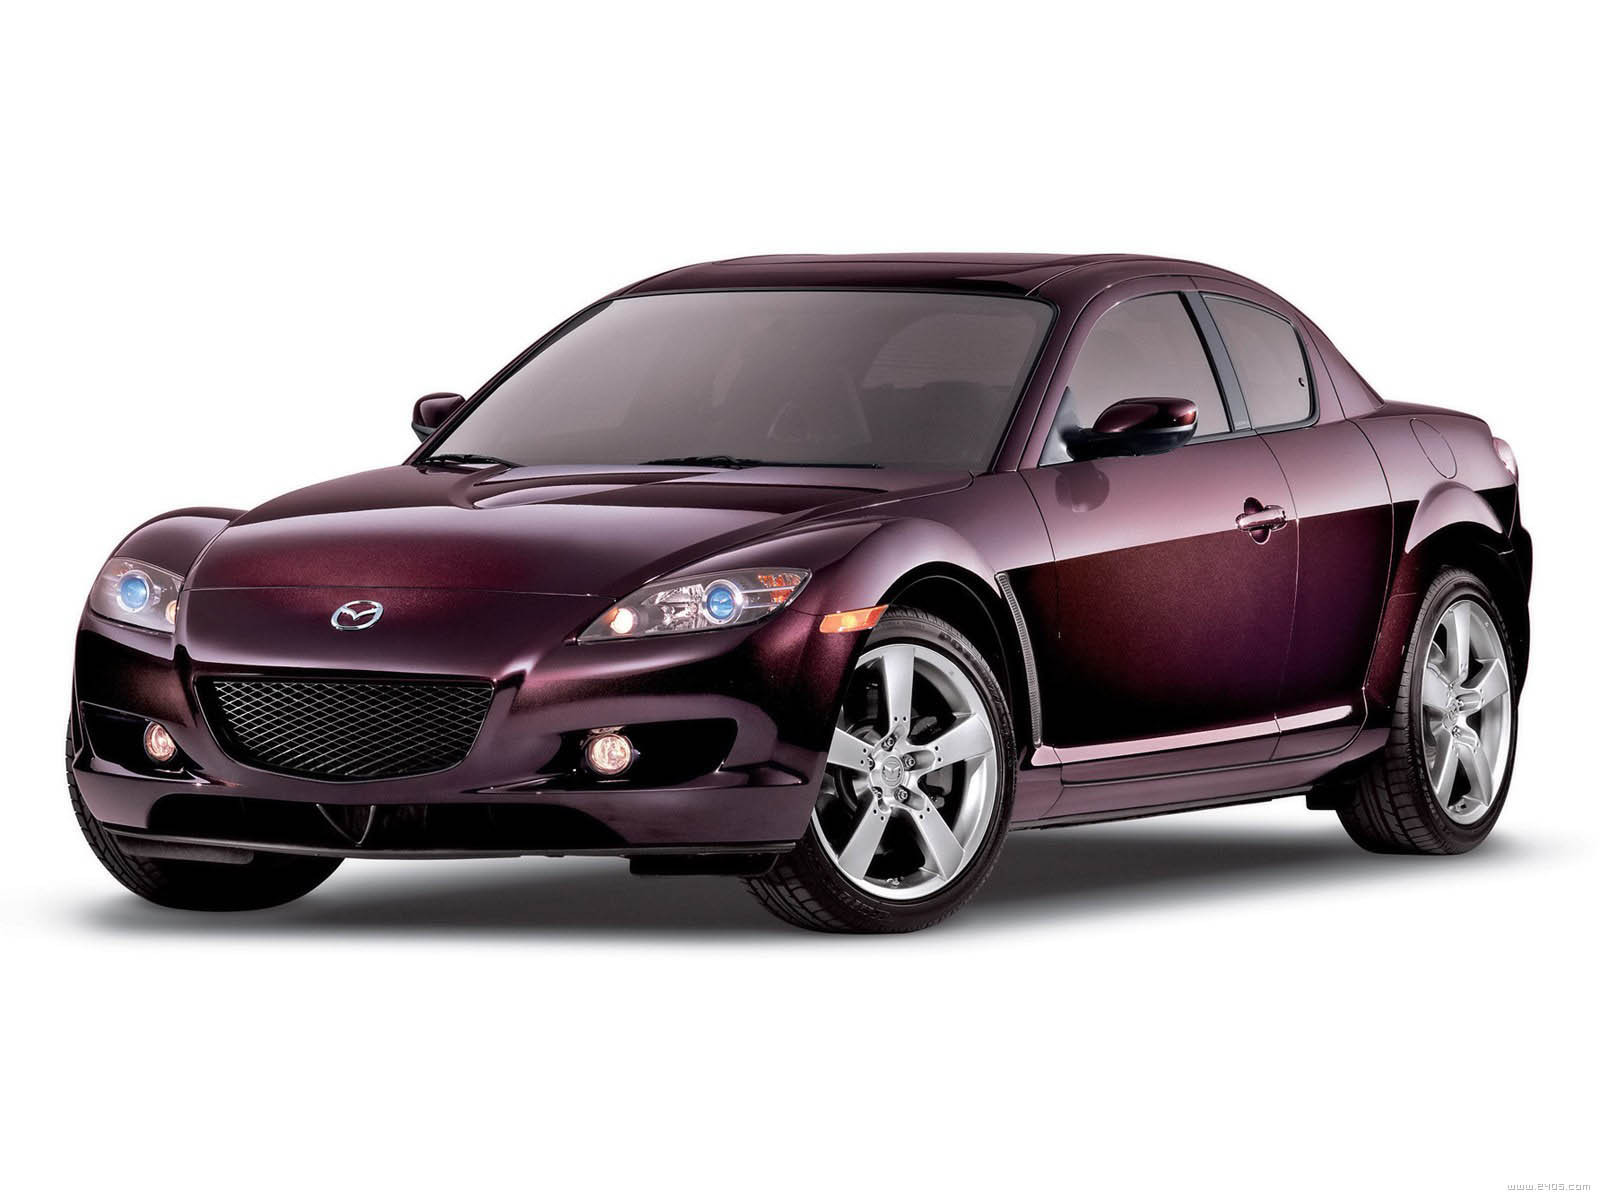 2005 mazda rx 8 shinka top speed. Black Bedroom Furniture Sets. Home Design Ideas